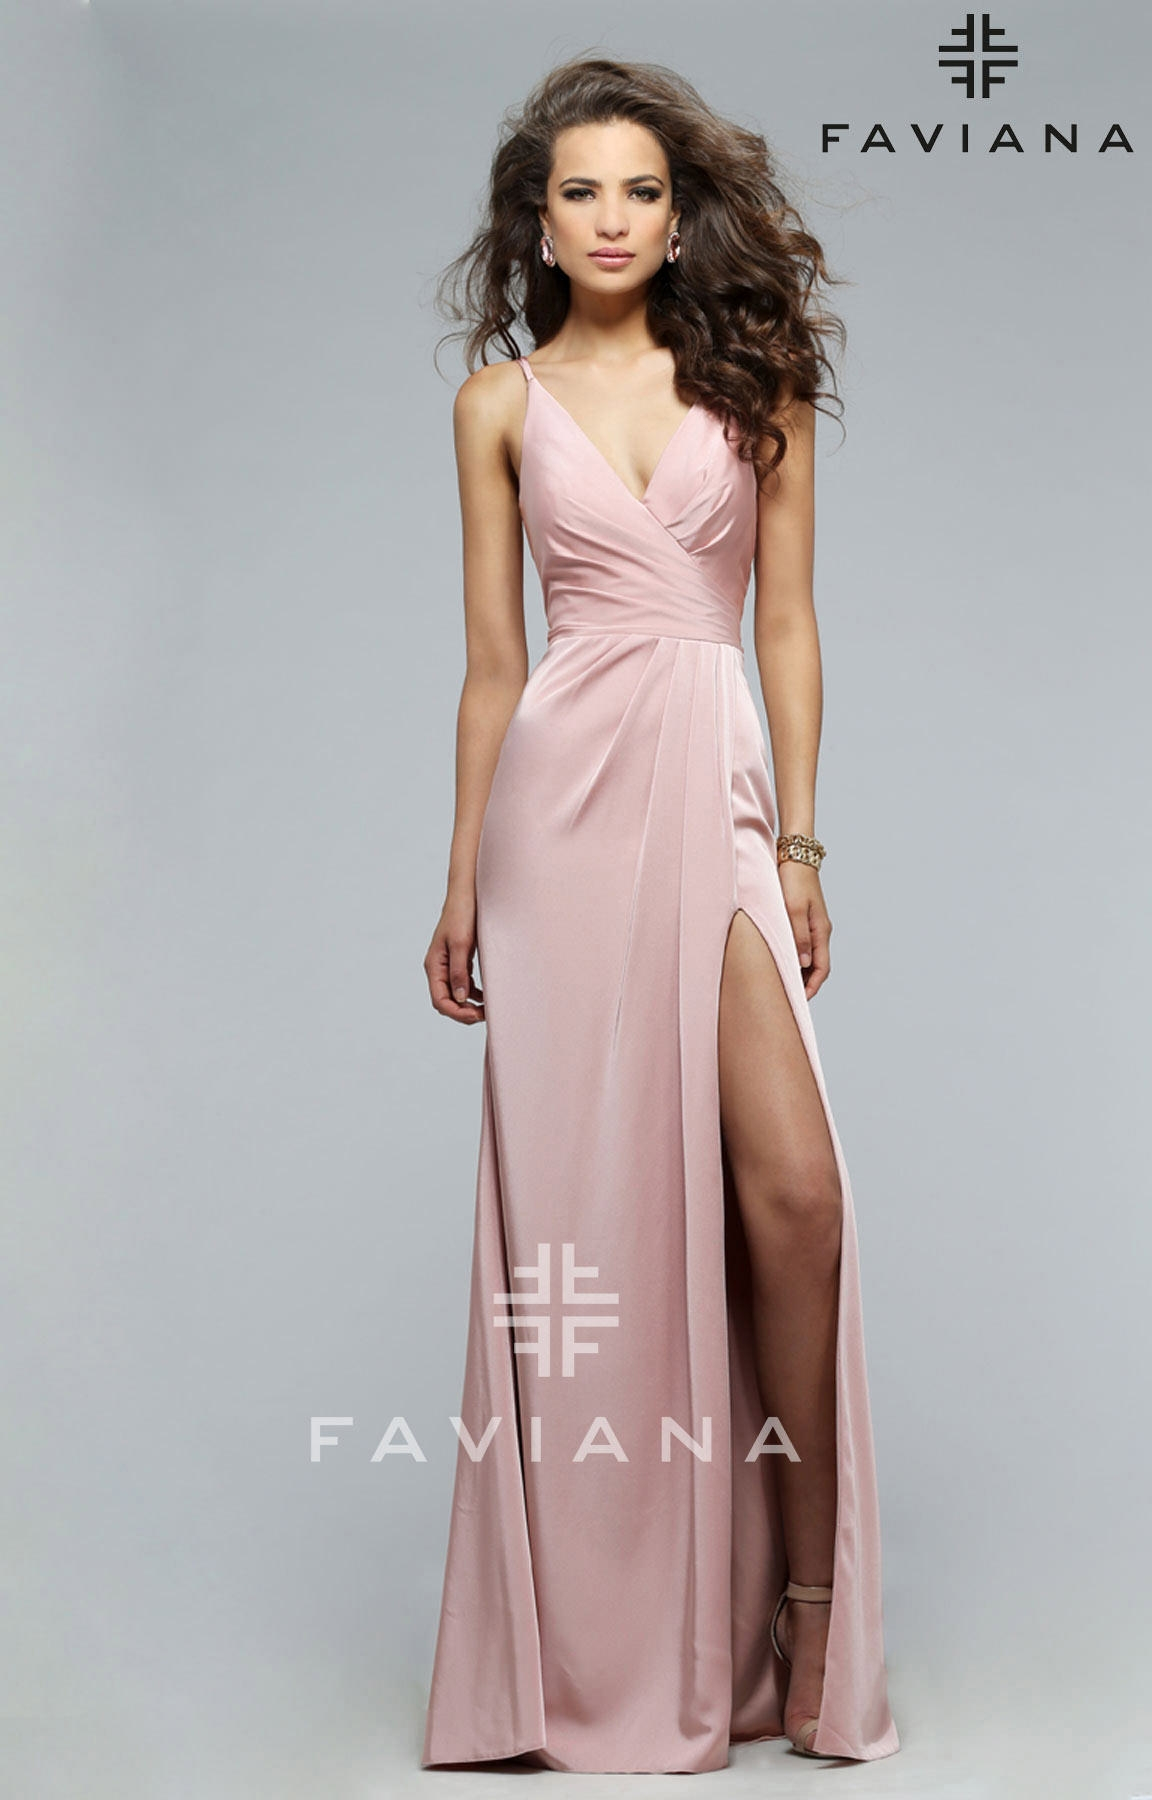 Faviana Dresses On Sale